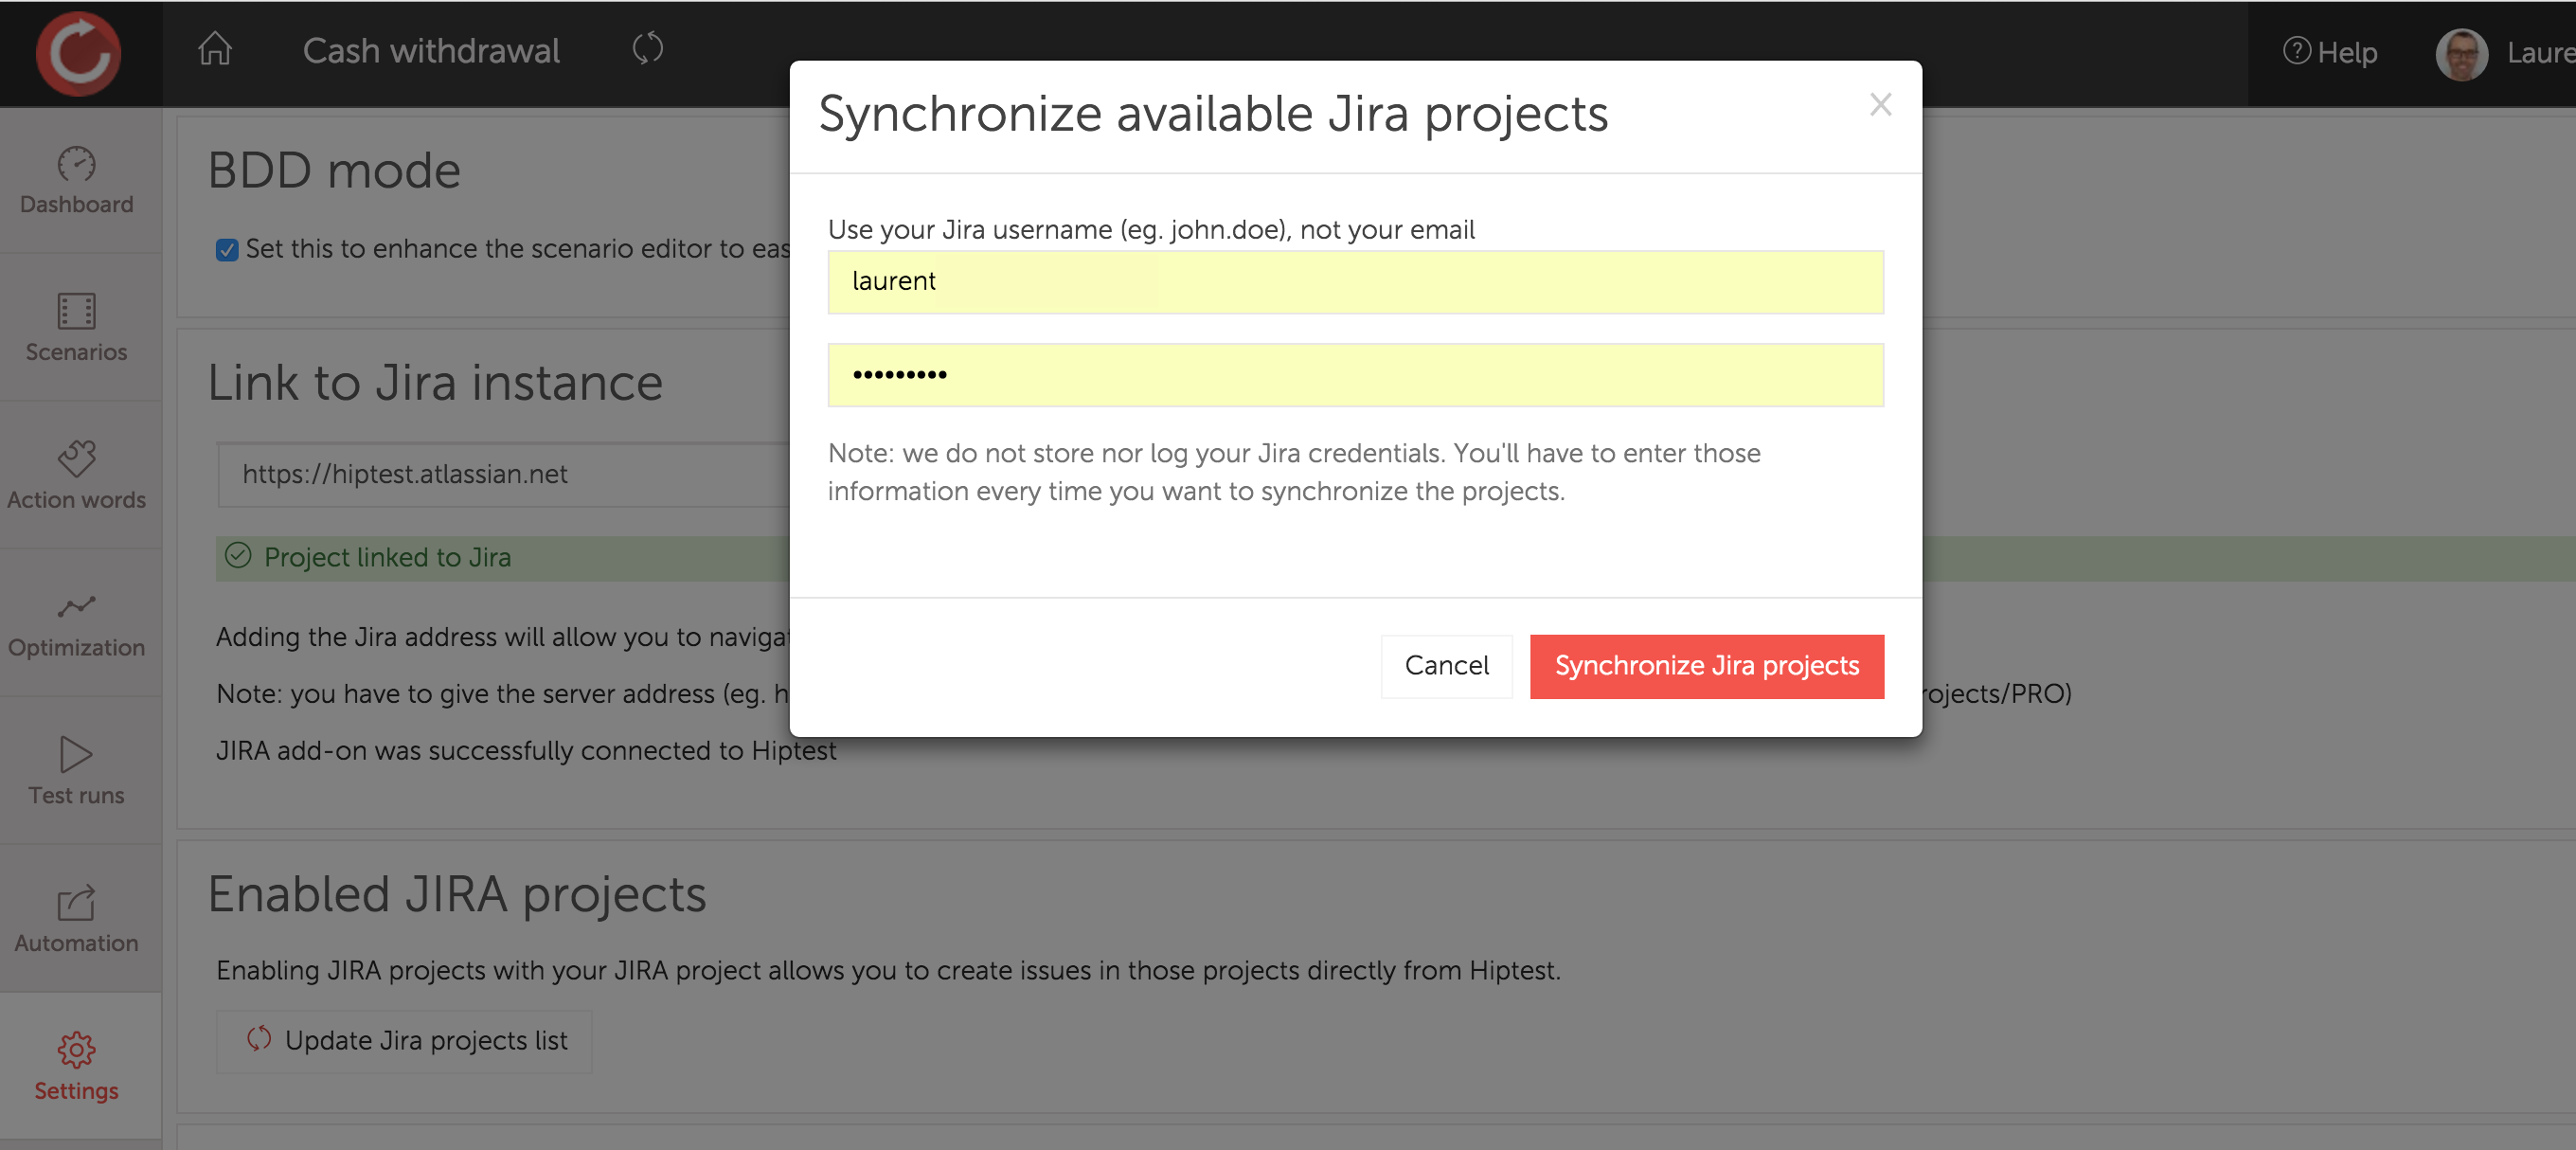 Synchronize available Jira projects